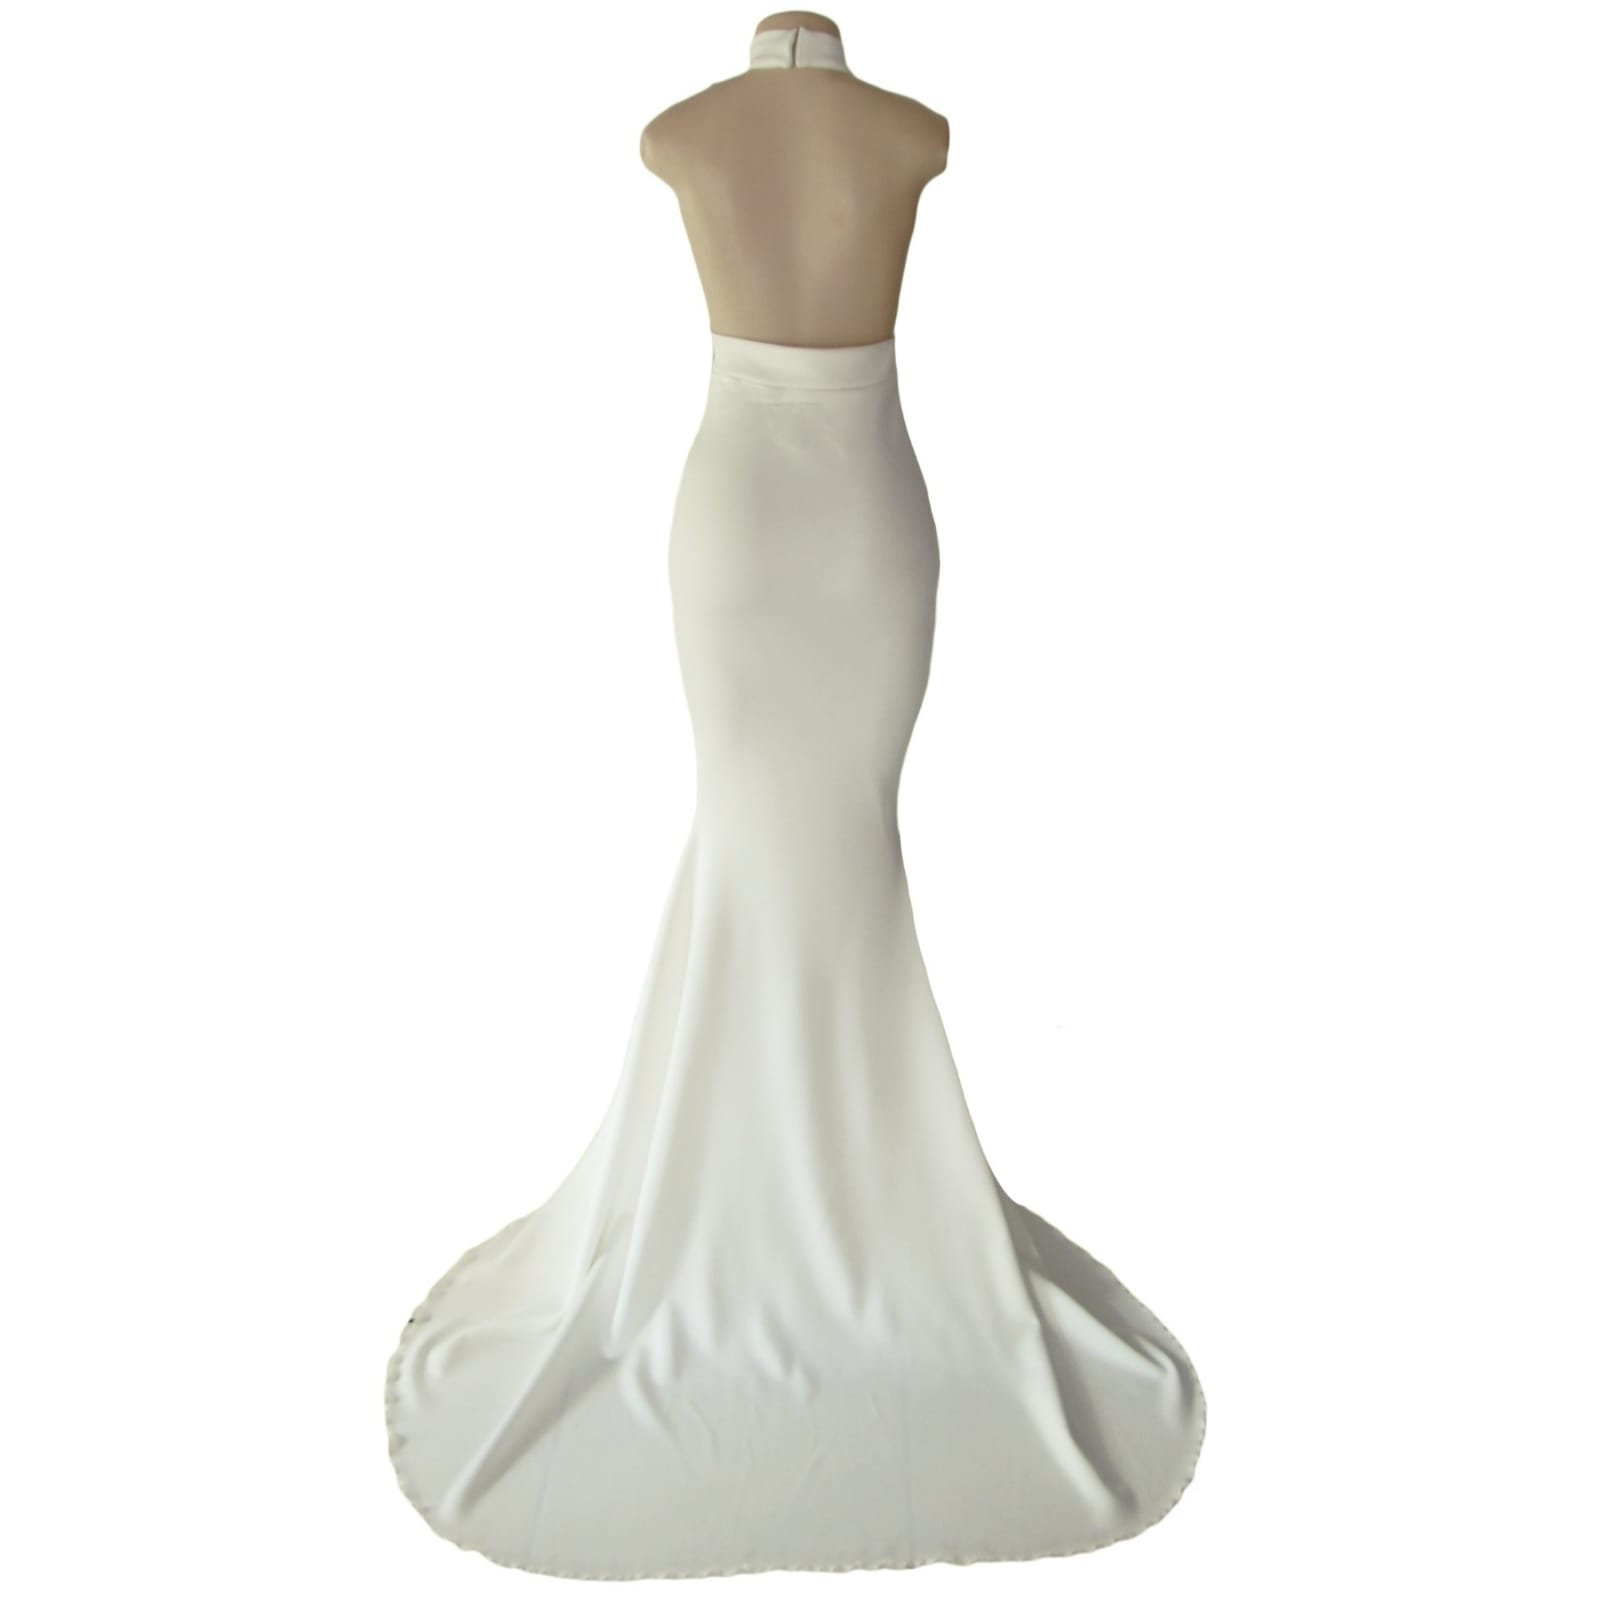 Plunging neckline ivory soft mermaid prom dress 7 ivory soft mermaid prom dress with a plunging and choker neckline with a naked back and a train